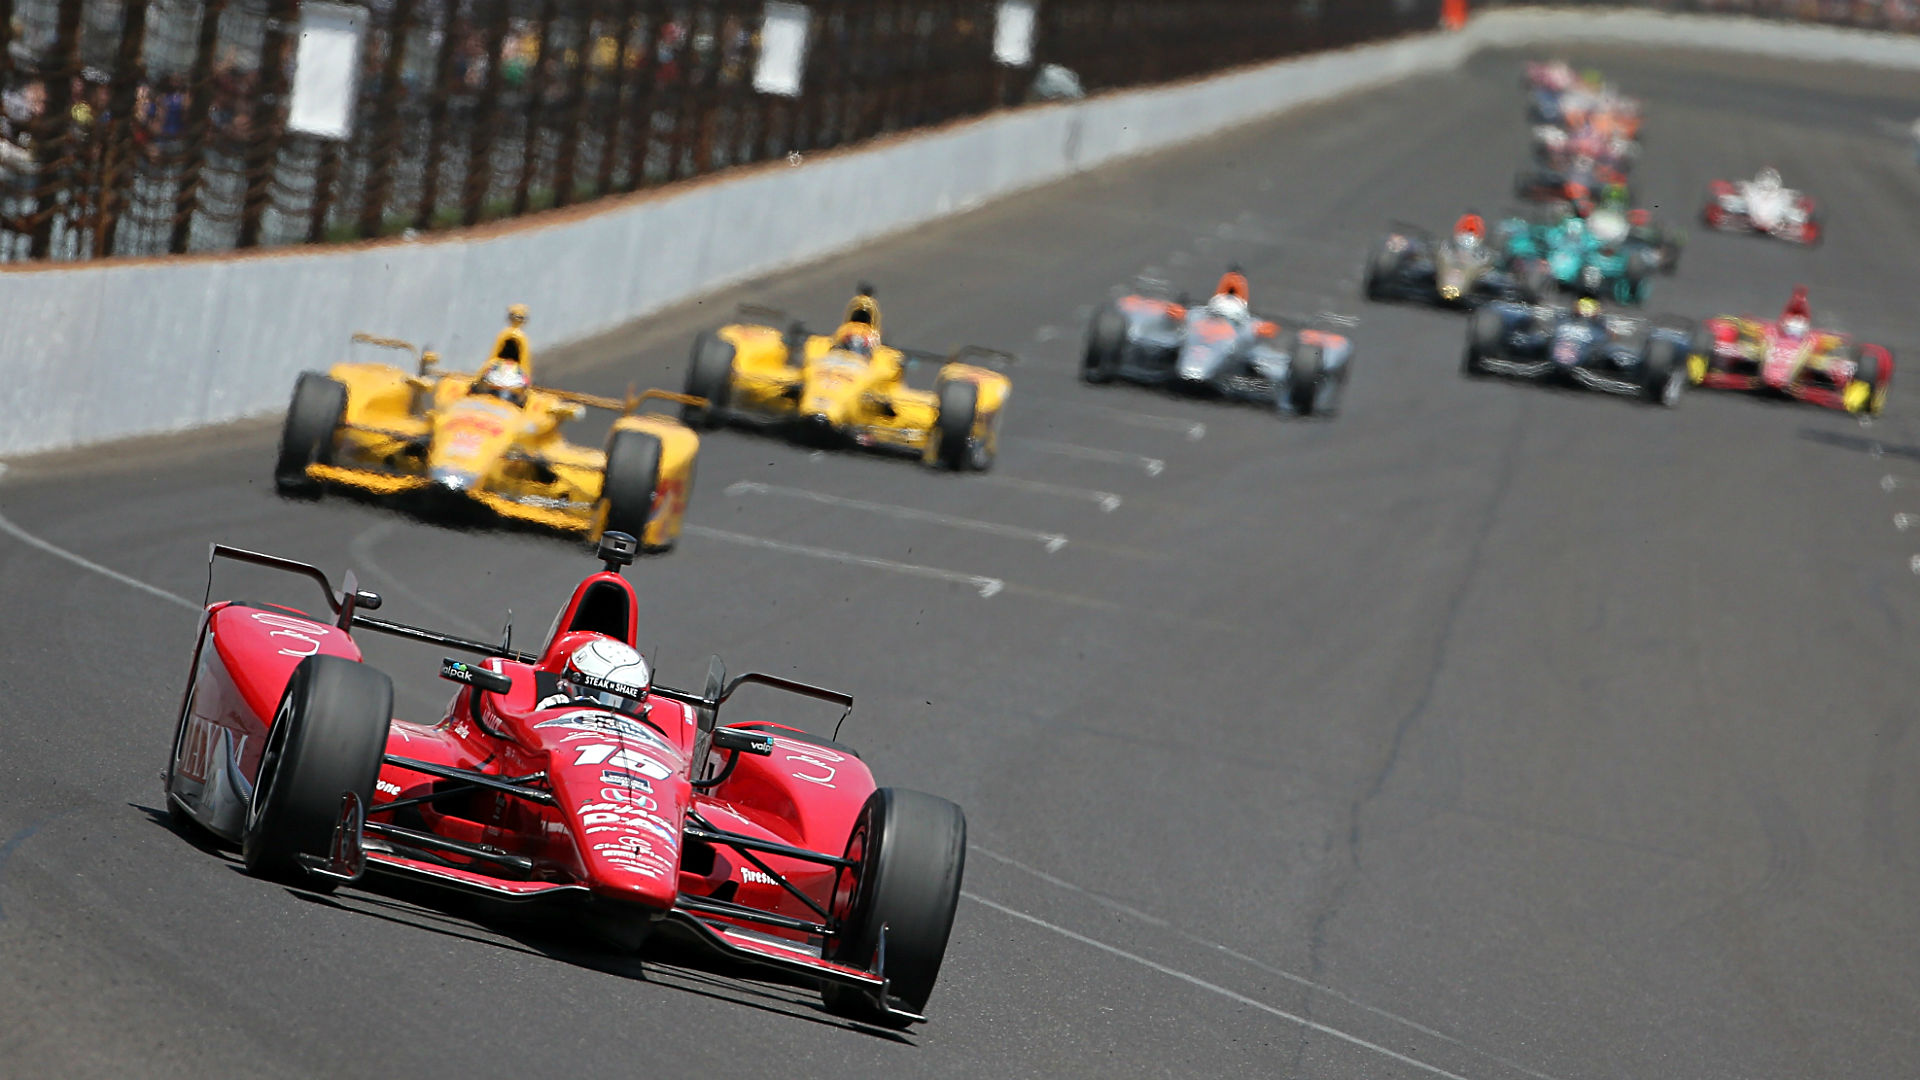 2013 Indy 500 Race Cars